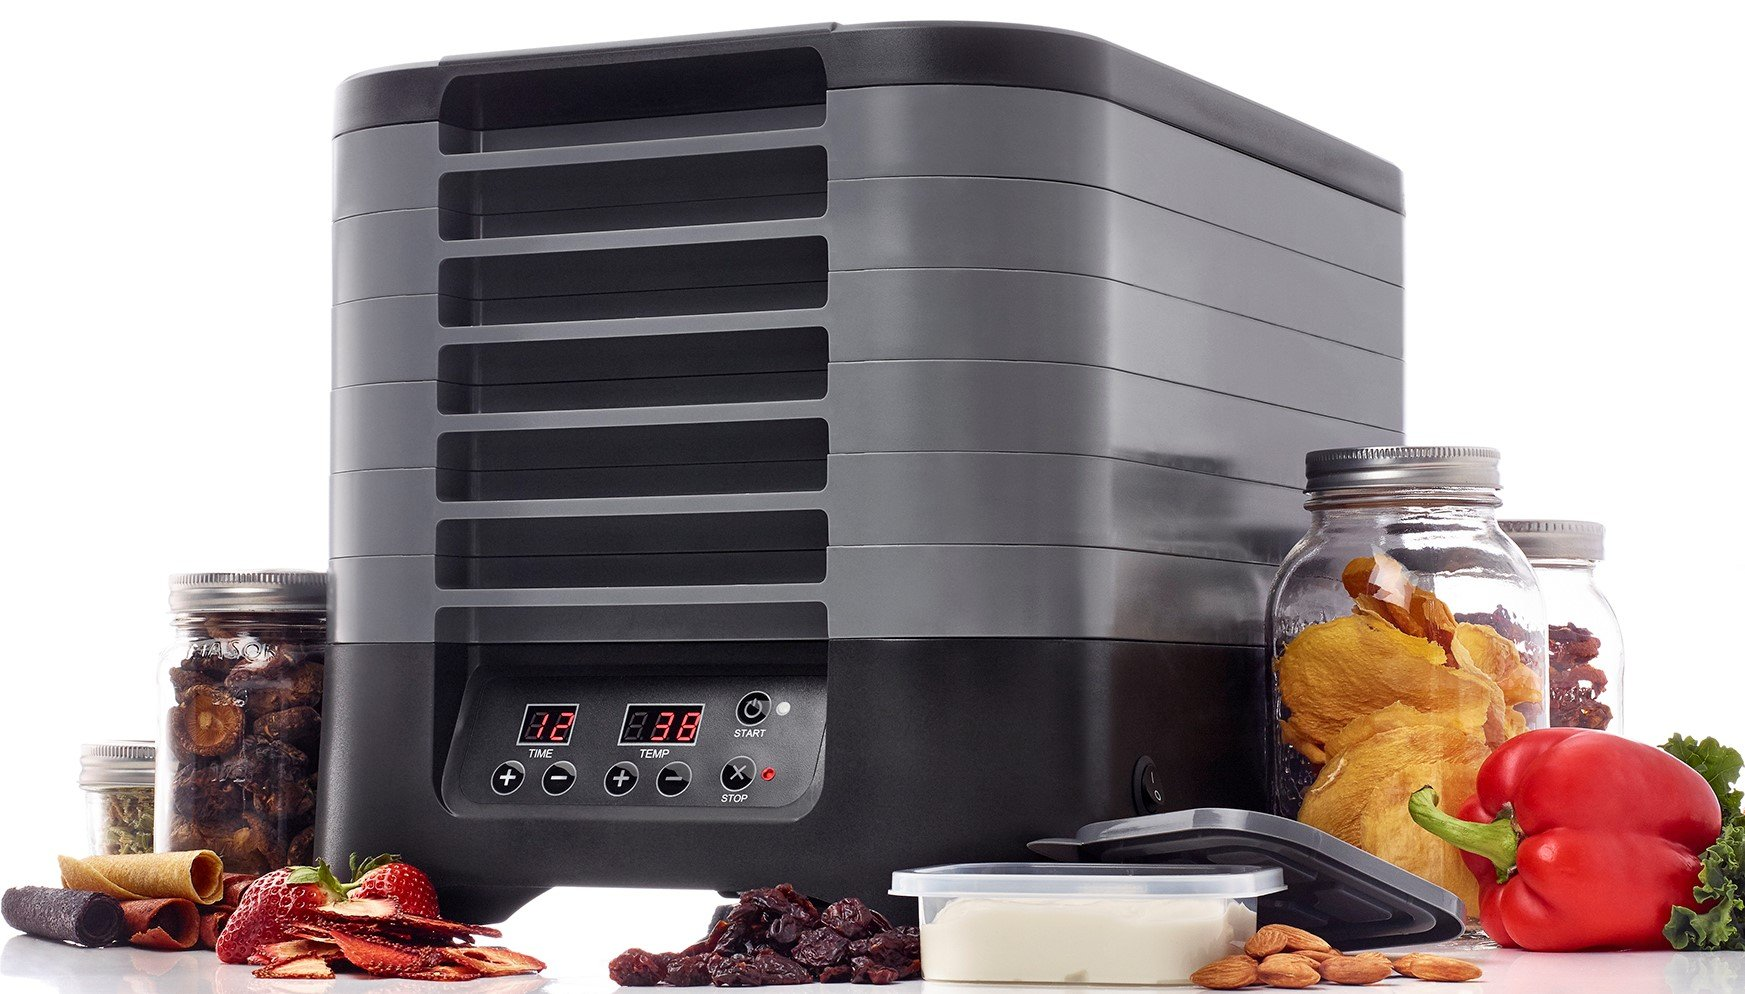 Excalibur STL60B STS60B Stackable Electric Food Dehydrator with Digital Control Featuring 48-Hour Timer Includes Mesh Screens Yogurt Cups and Drying Sheets, Gray by Excalibur (Image #1)